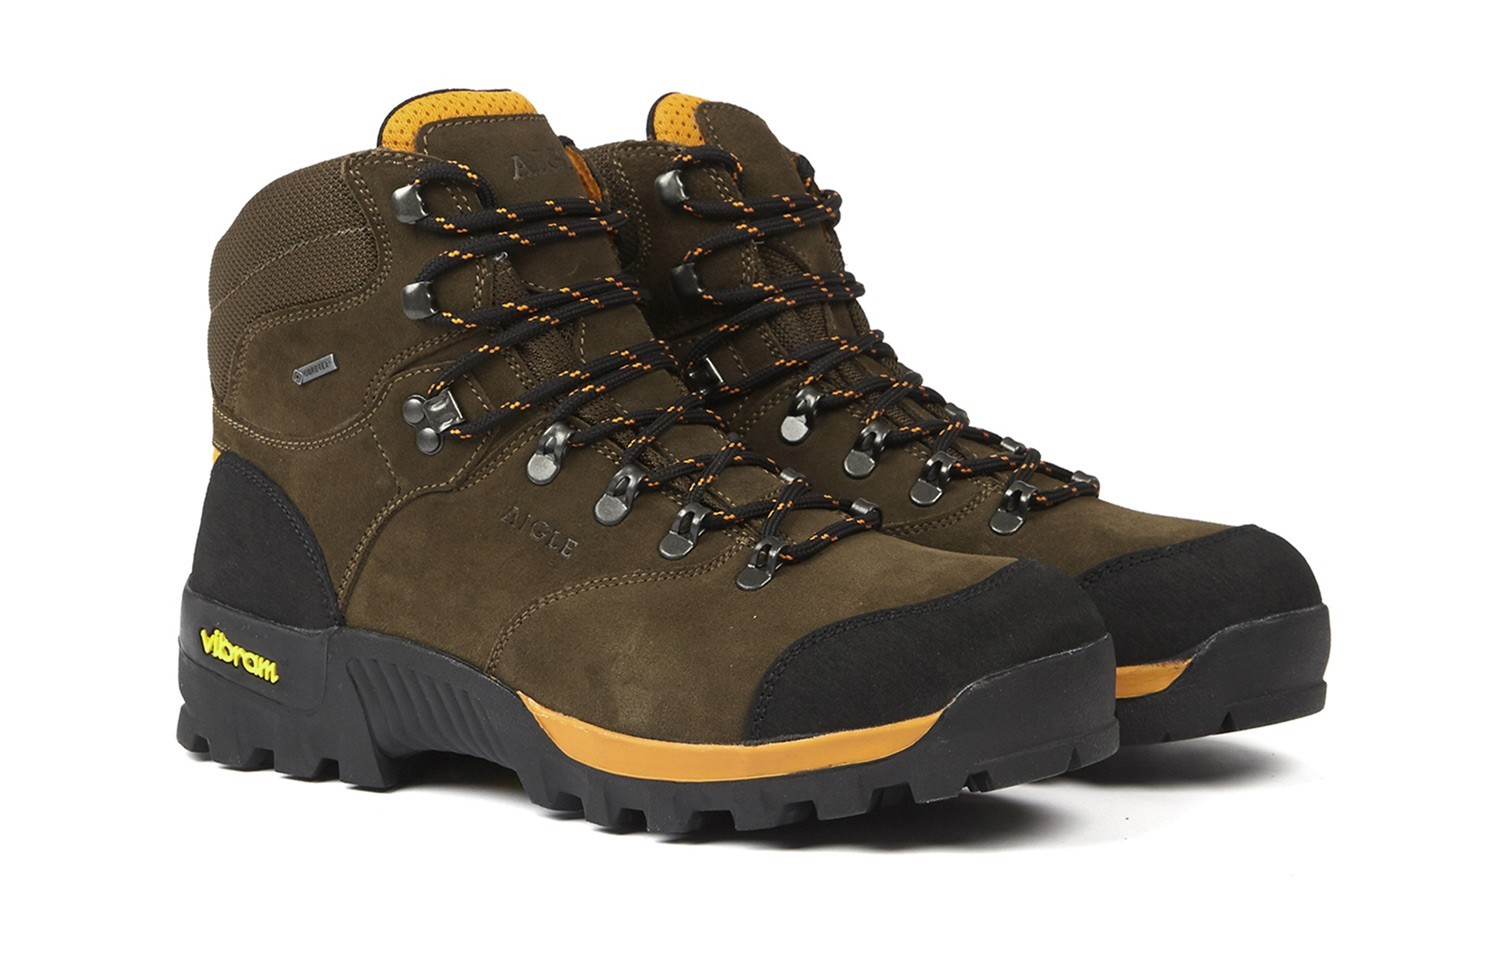 Iweh29d Chaussures Aigle Chasse Gtx Techniques Mid De Altavio Ygyvbf76